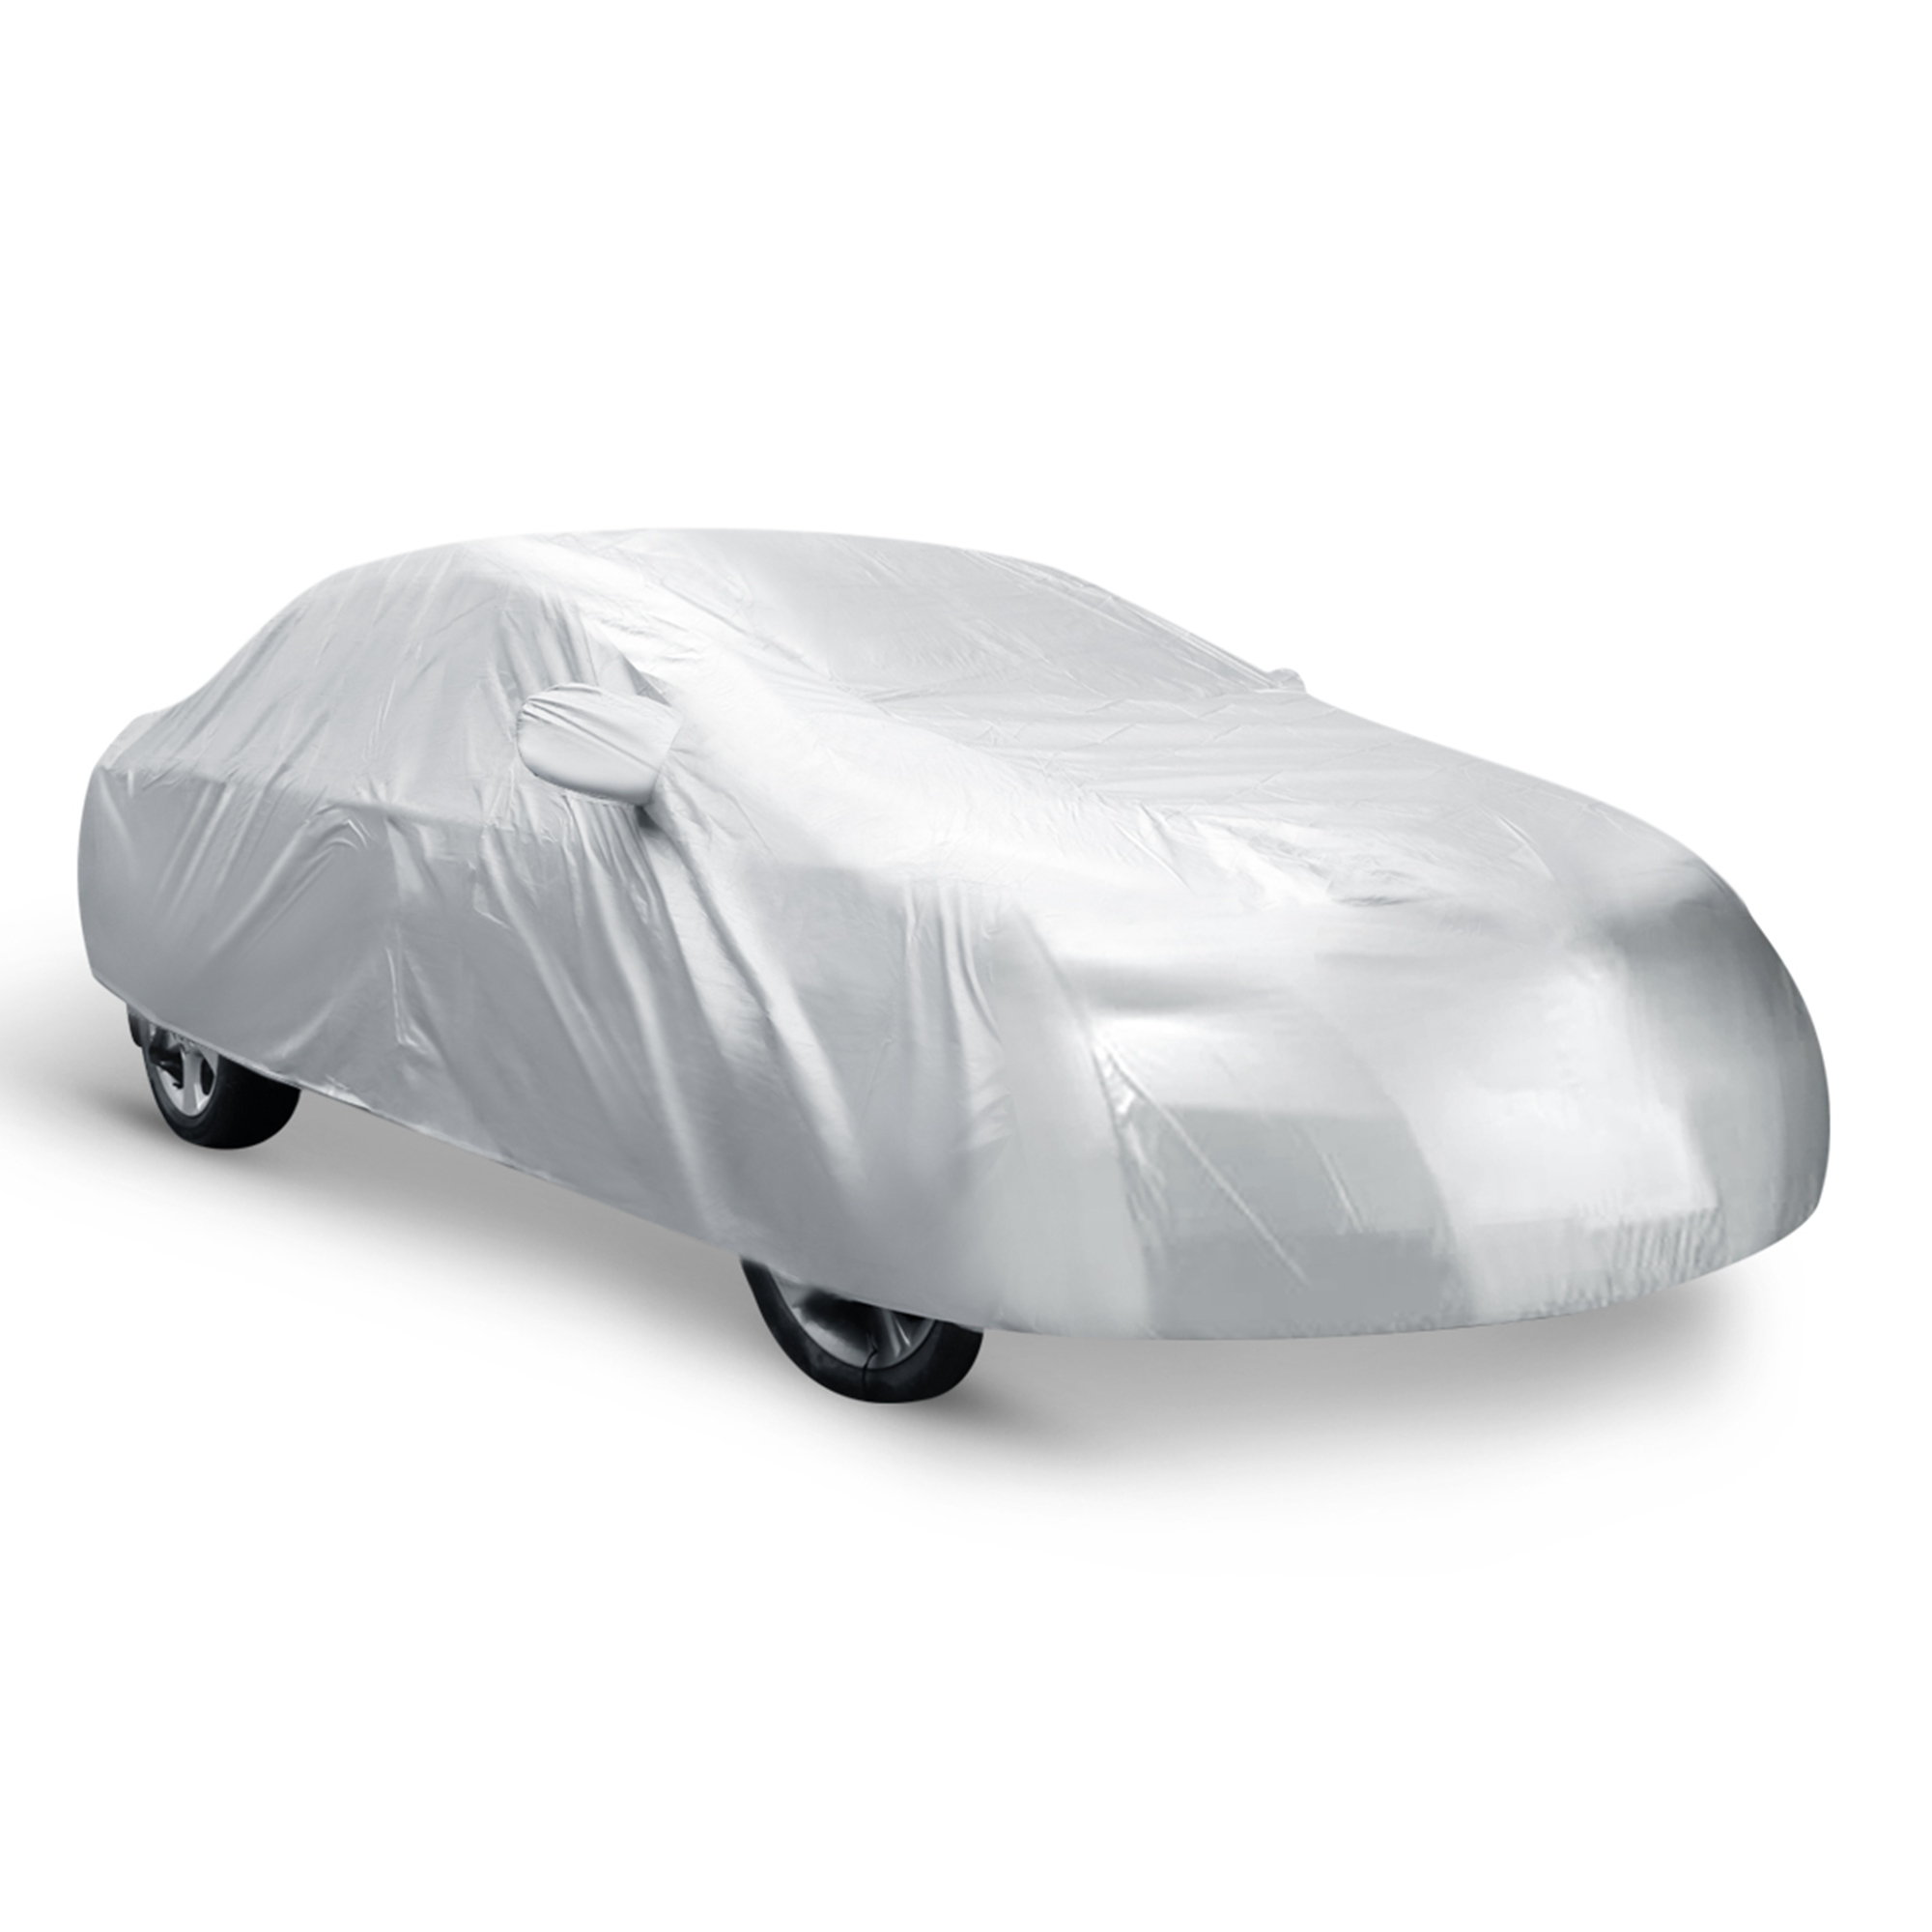 Waterproof Sun UV Dust Rain Resistant All Weather Protective Cover Waterpoof Car Cover Size 3XL 4.9*1.8*1.5